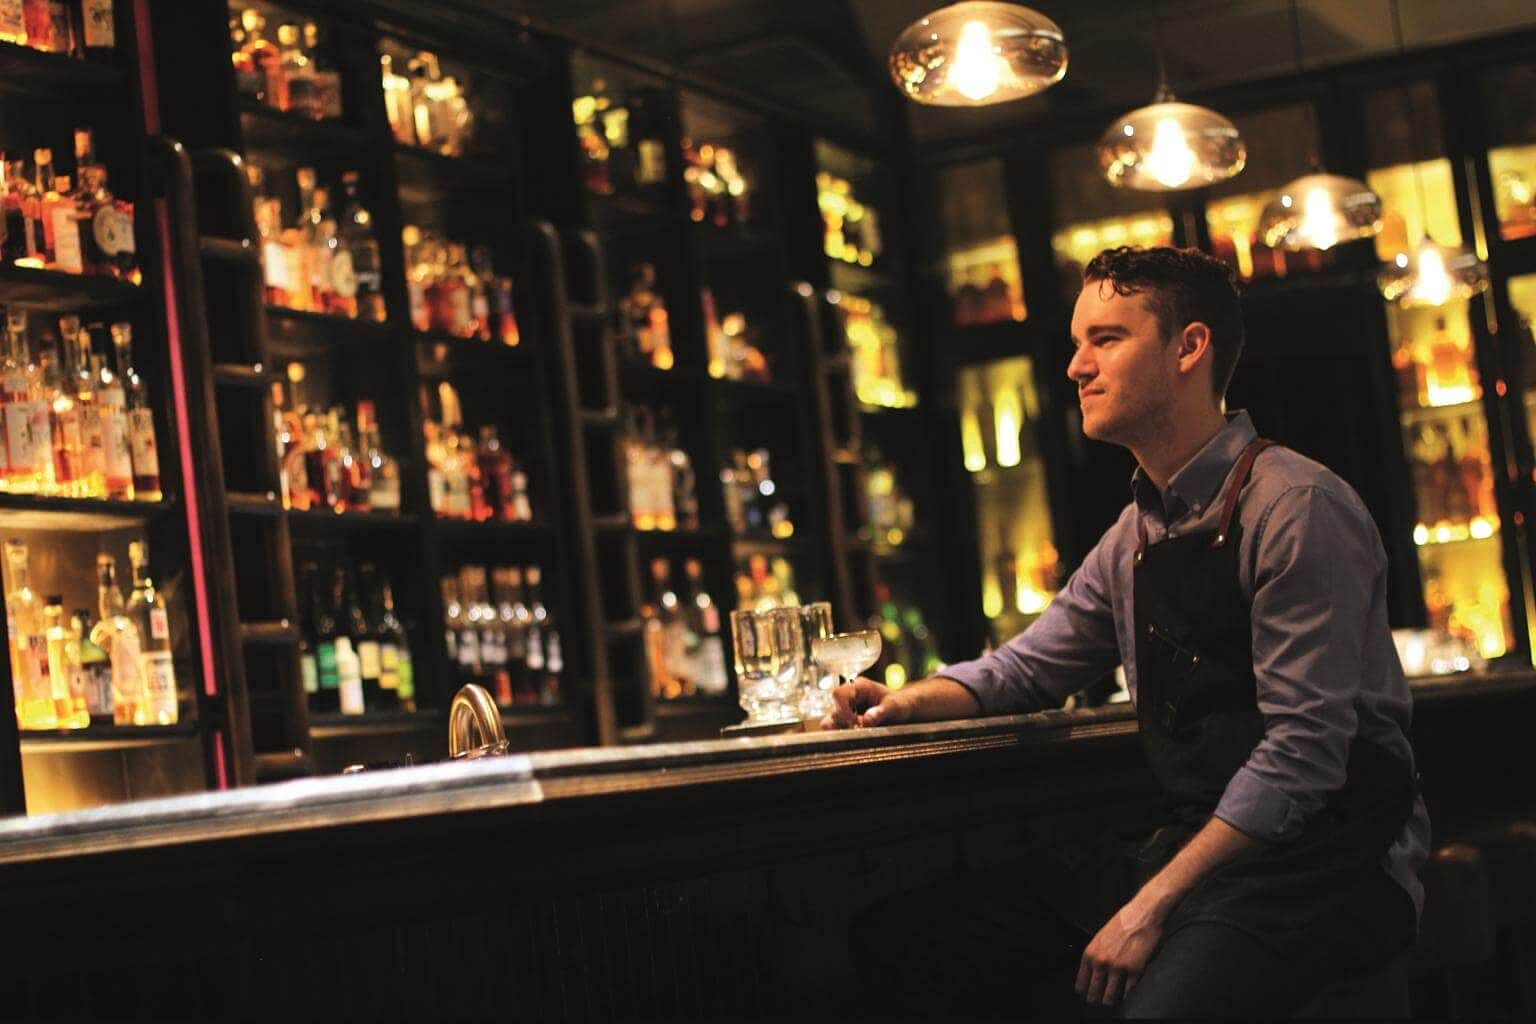 The American Bar at The Savoy named World's Best Bar